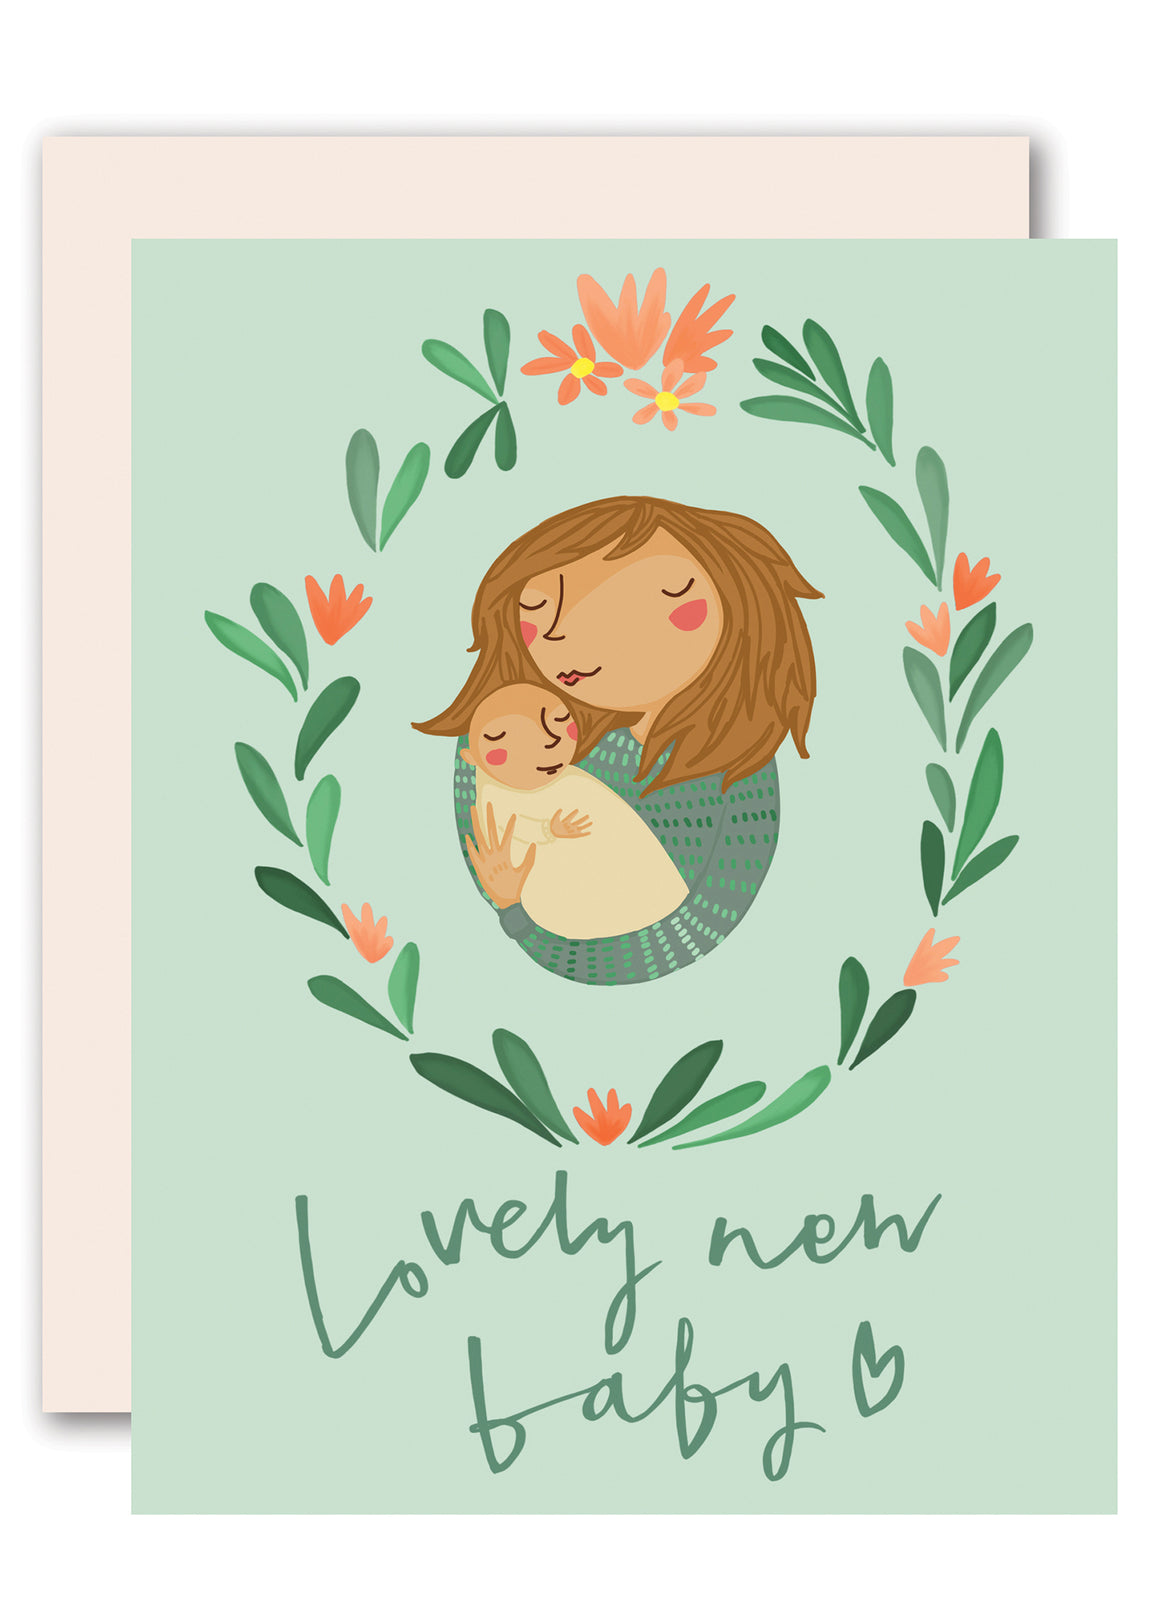 A Lovely New Baby greeting card